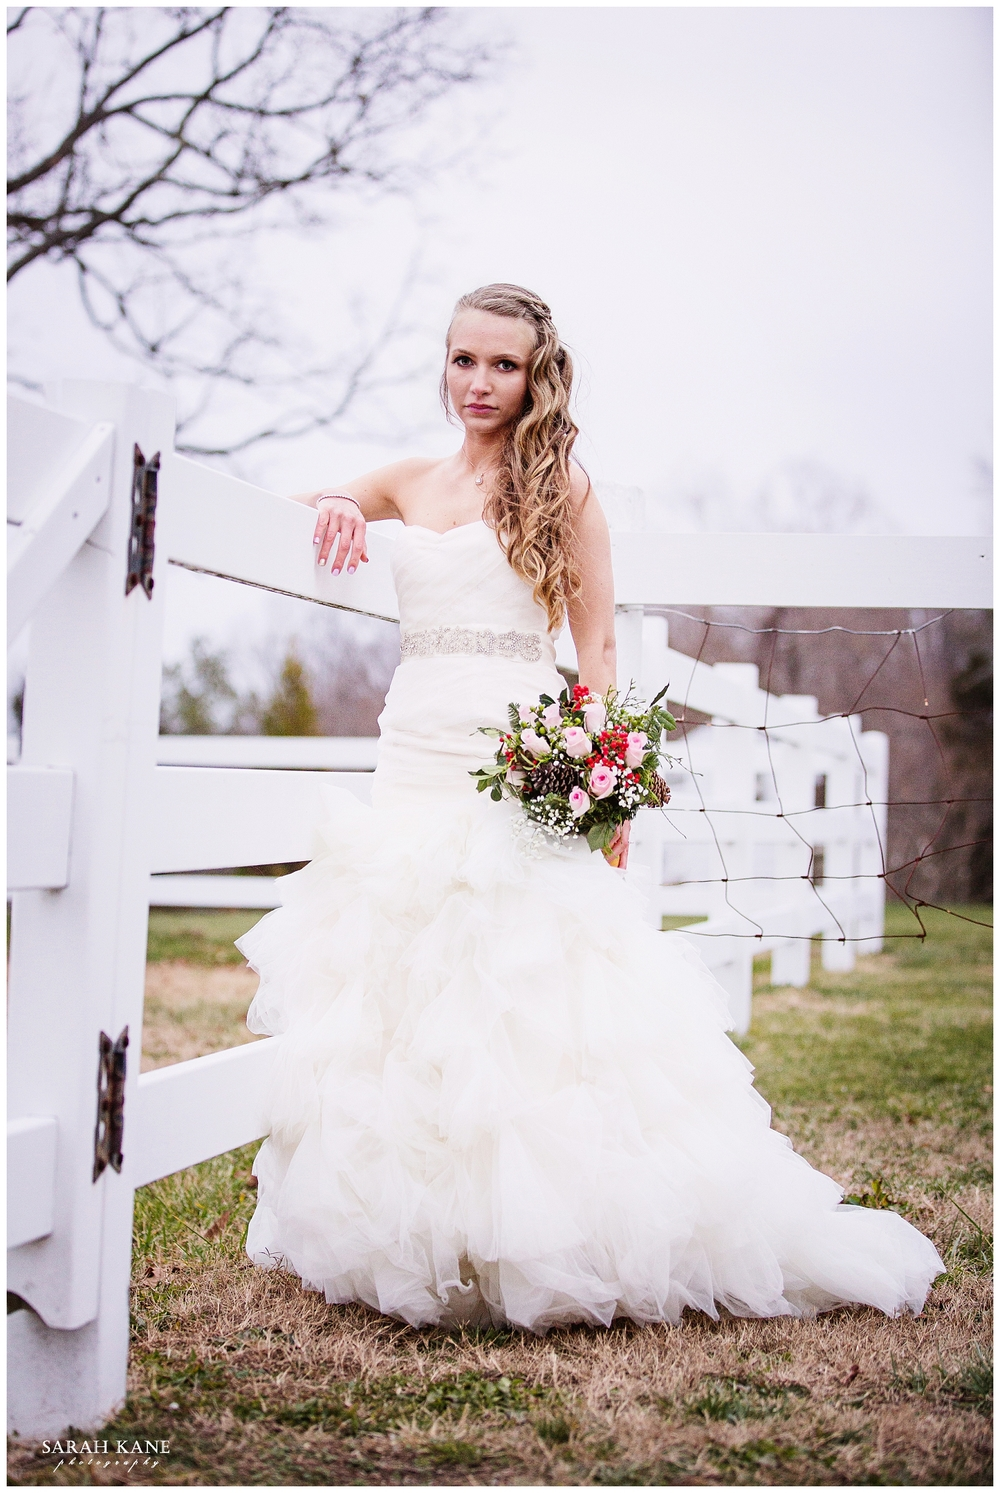 Wedding at Amber Grove in Mosely VA - Sarah Kane Photography354.JPG